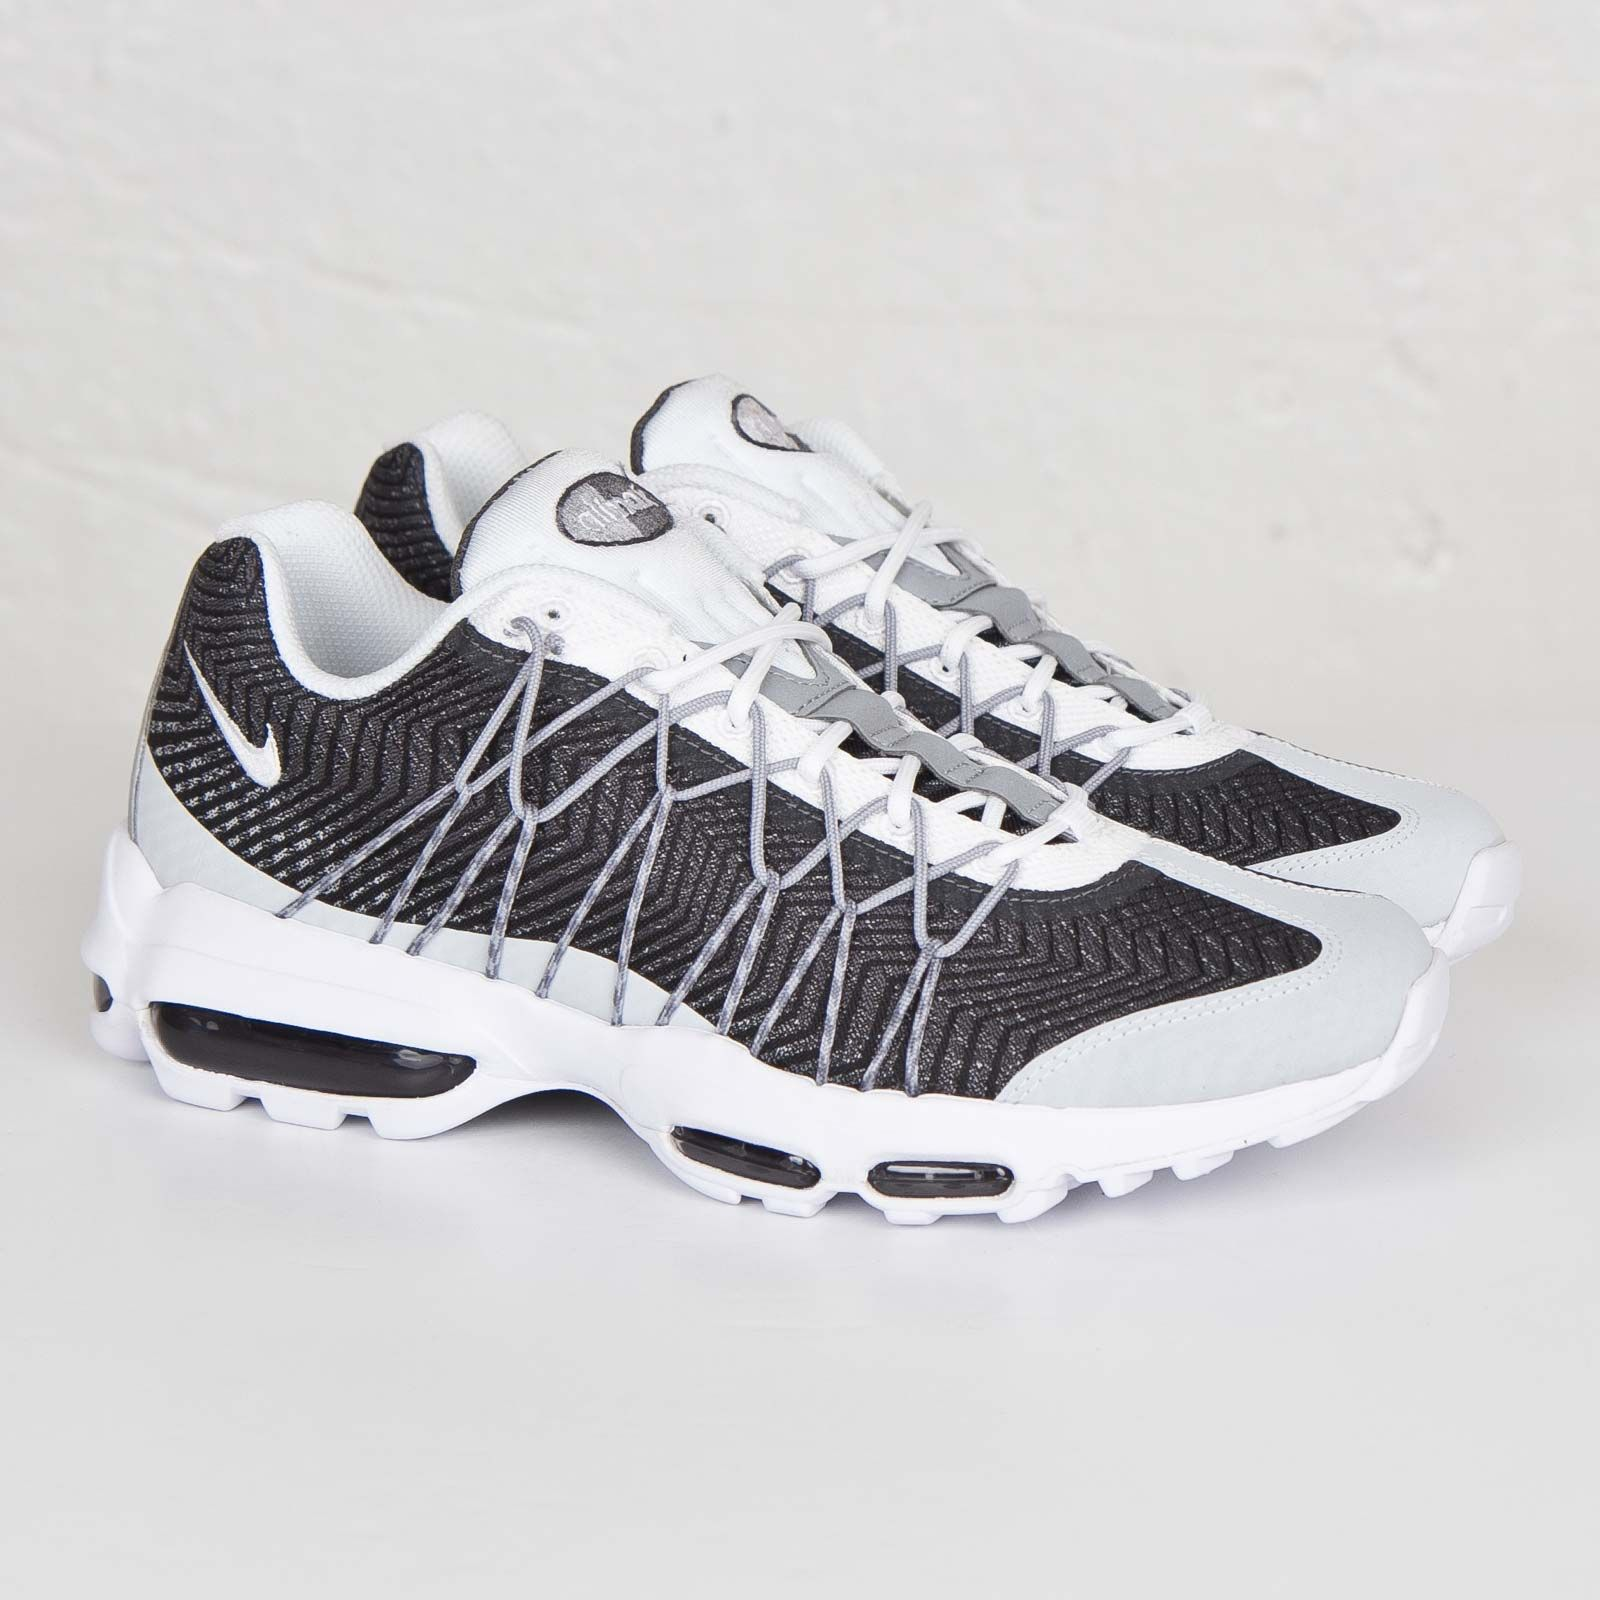 Nike Air Max 95 Essential South Beach Black Wolf Grey